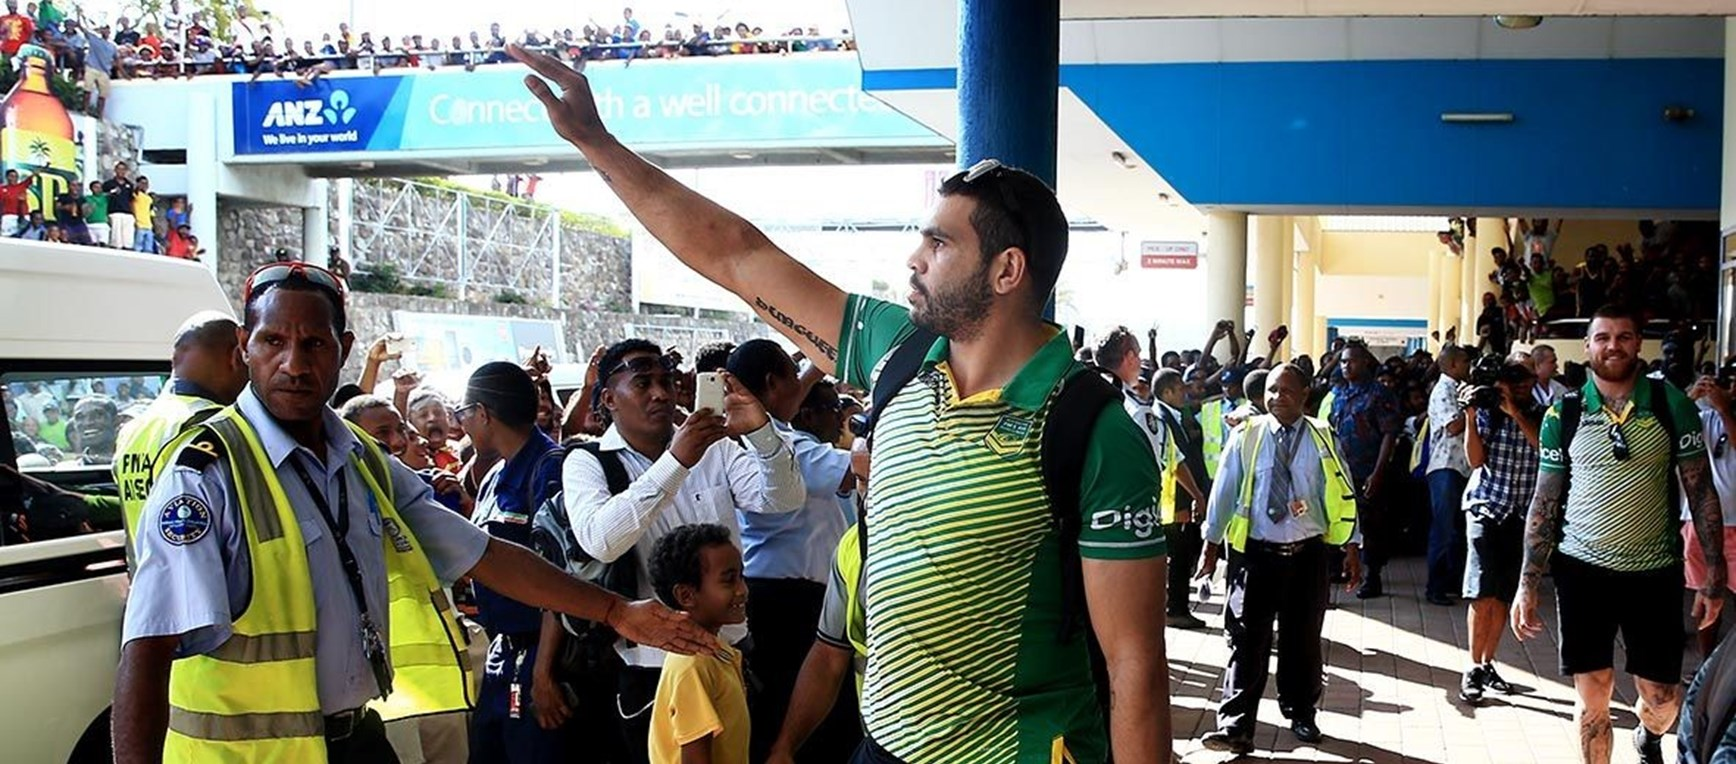 GALLERY: PM's XIII Arrival In PNG